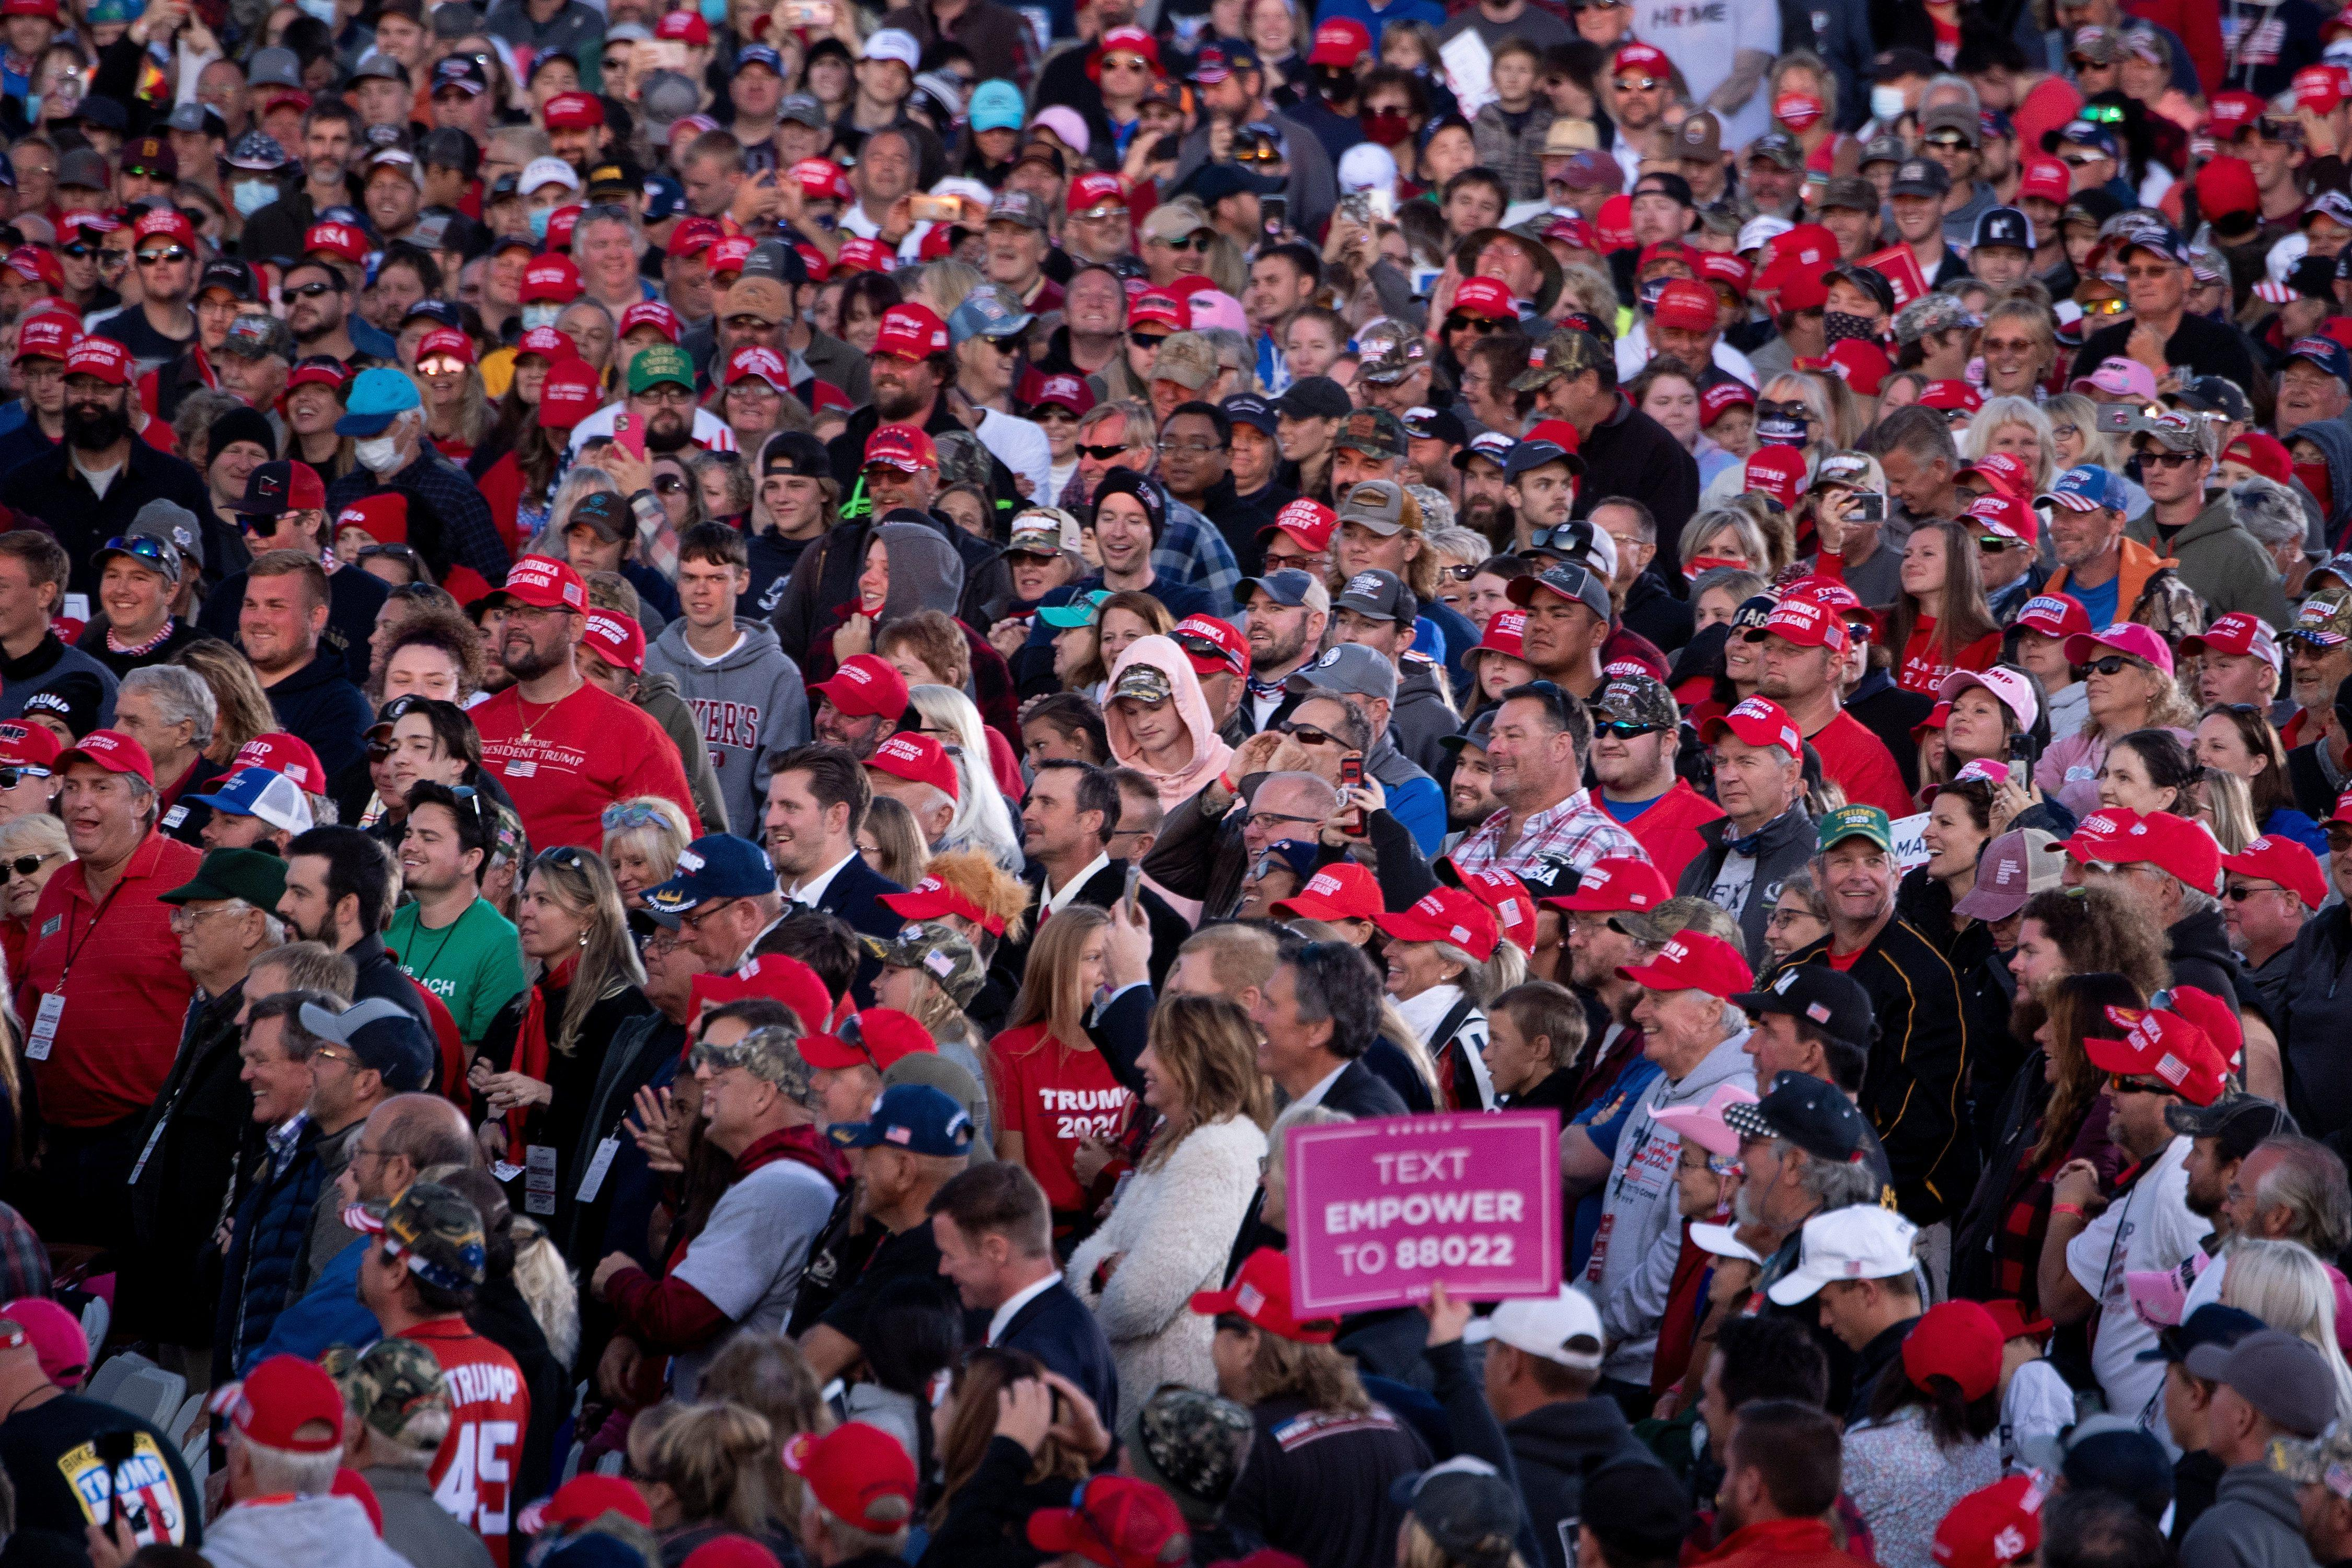 Almost two dozen COVID-19 infections tied to Trump's Minnesota rallies.